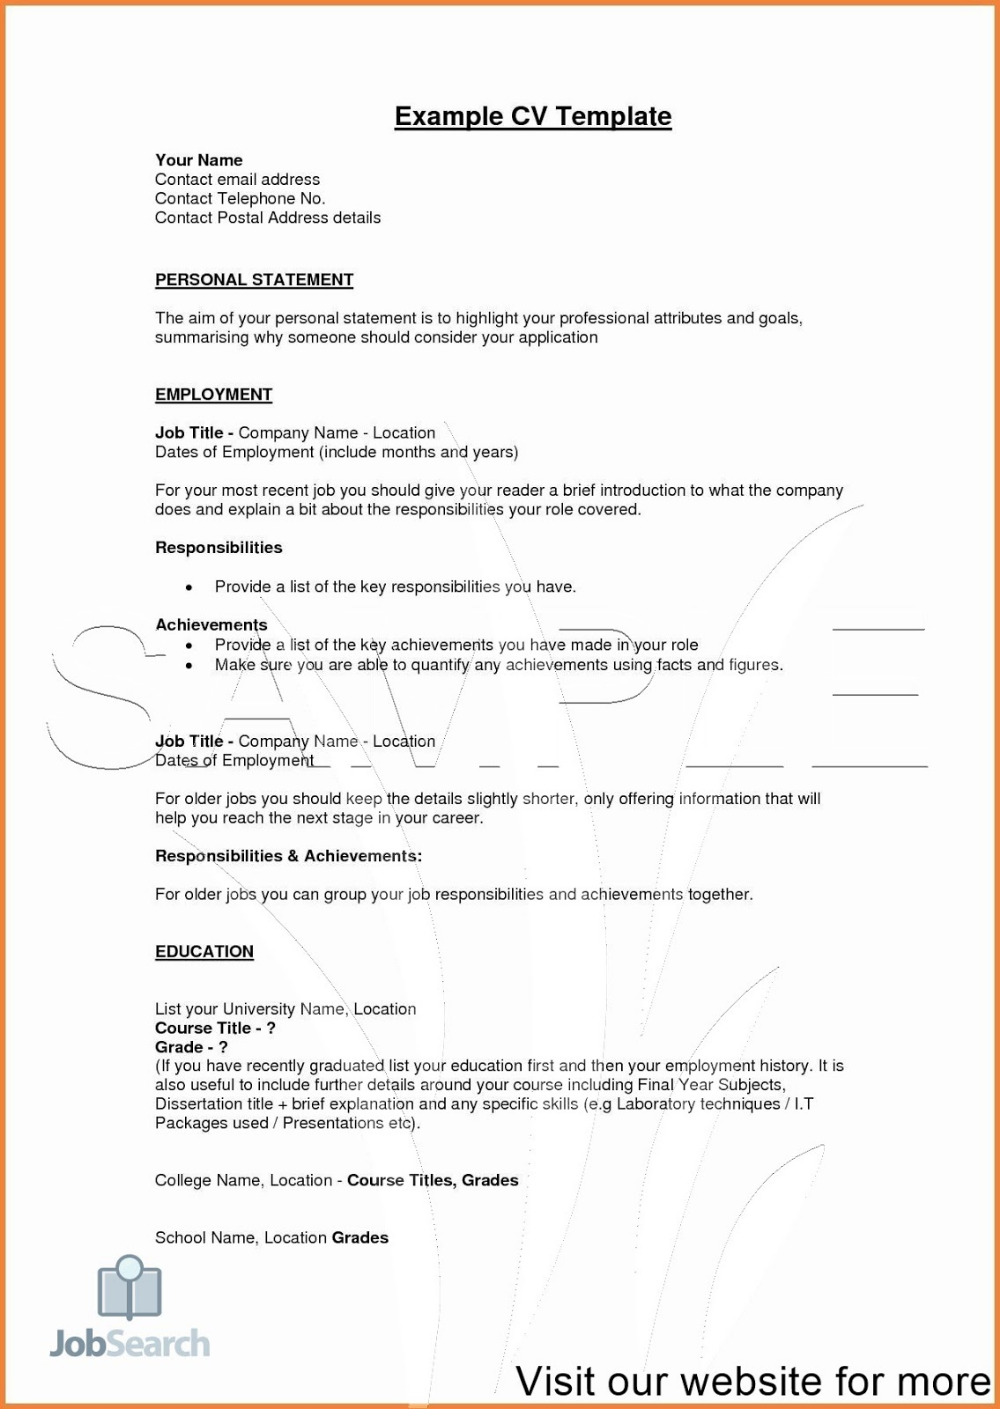 Job Resume Pdf 2020 Job Resume For Freshers In 2020 Resume Pdf